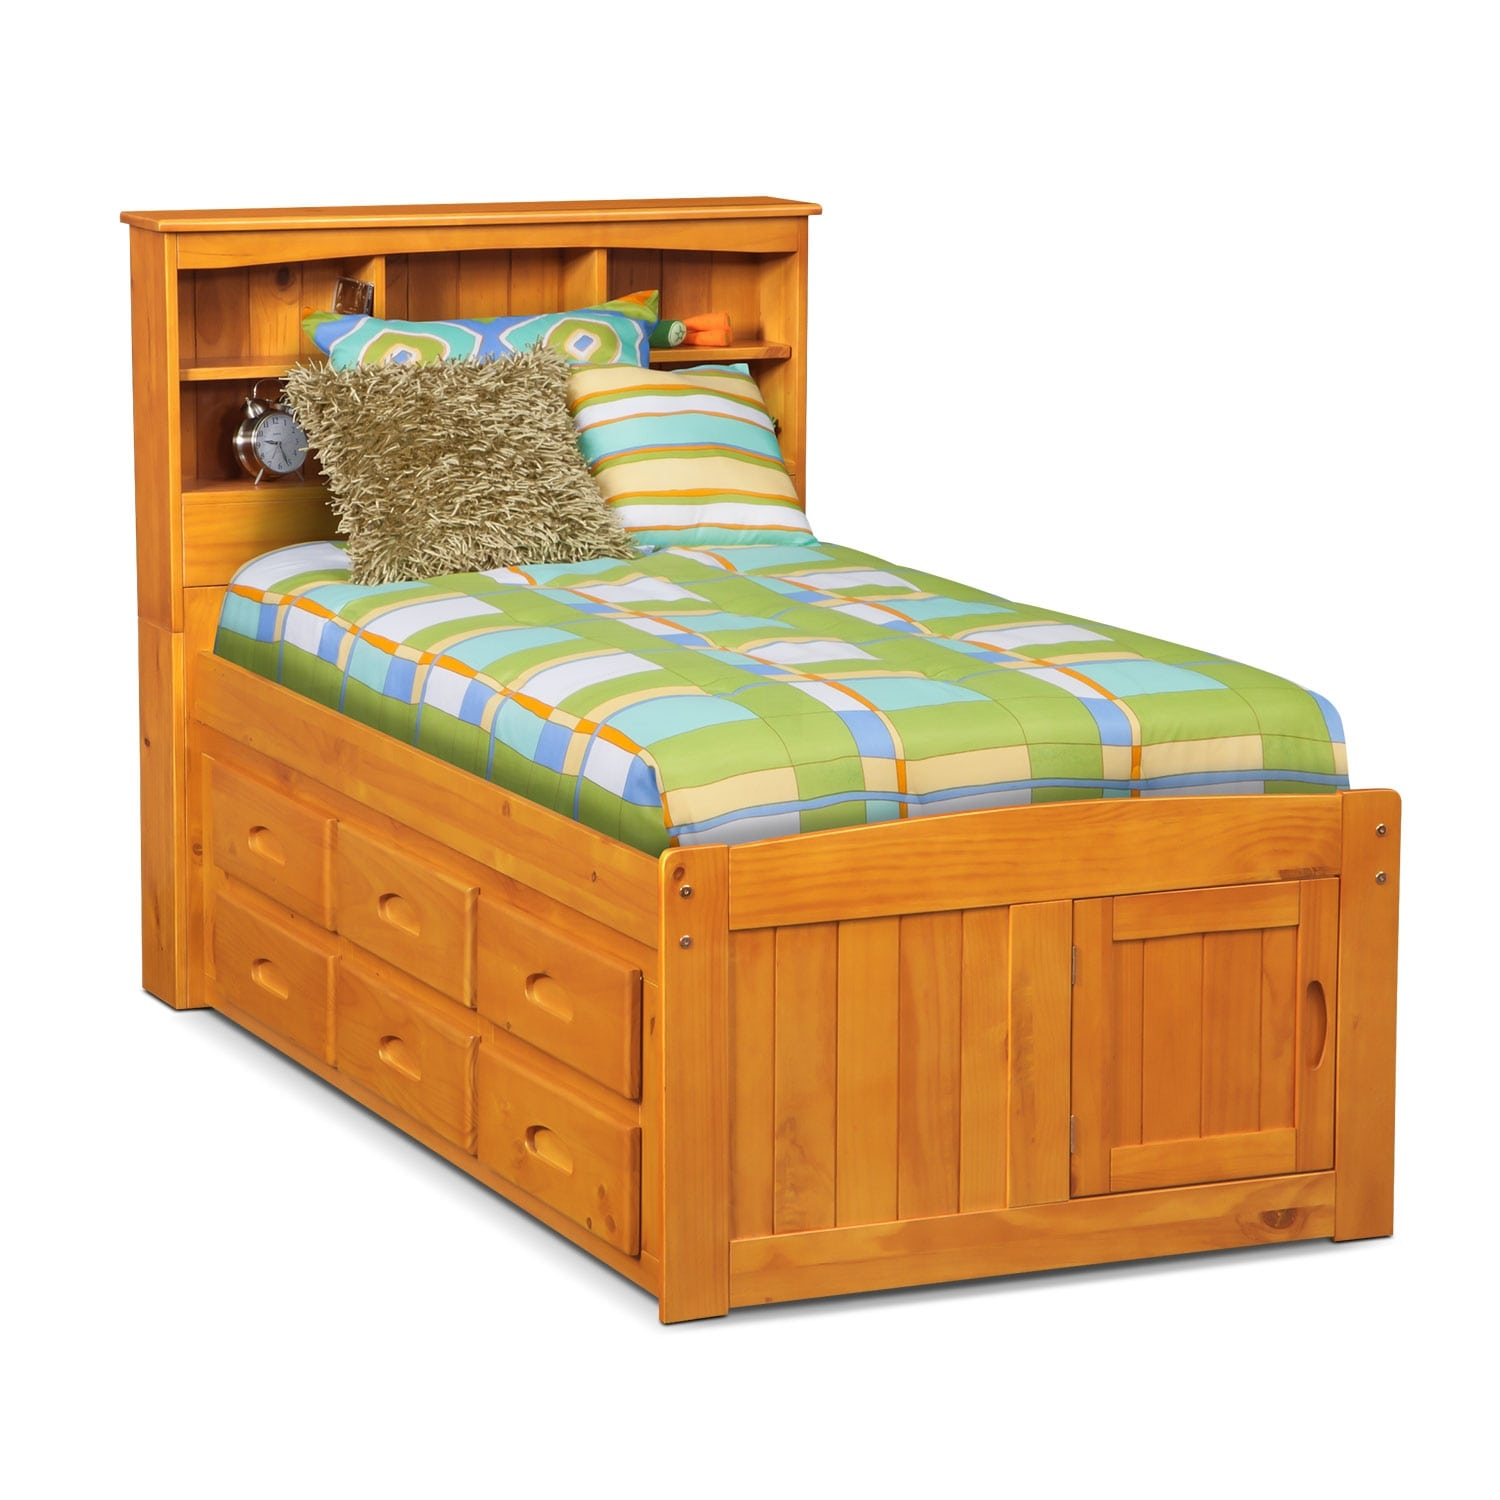 Kids Furniture - Ranger Pine Full Bookcase Bed with 6-Drawer Storage